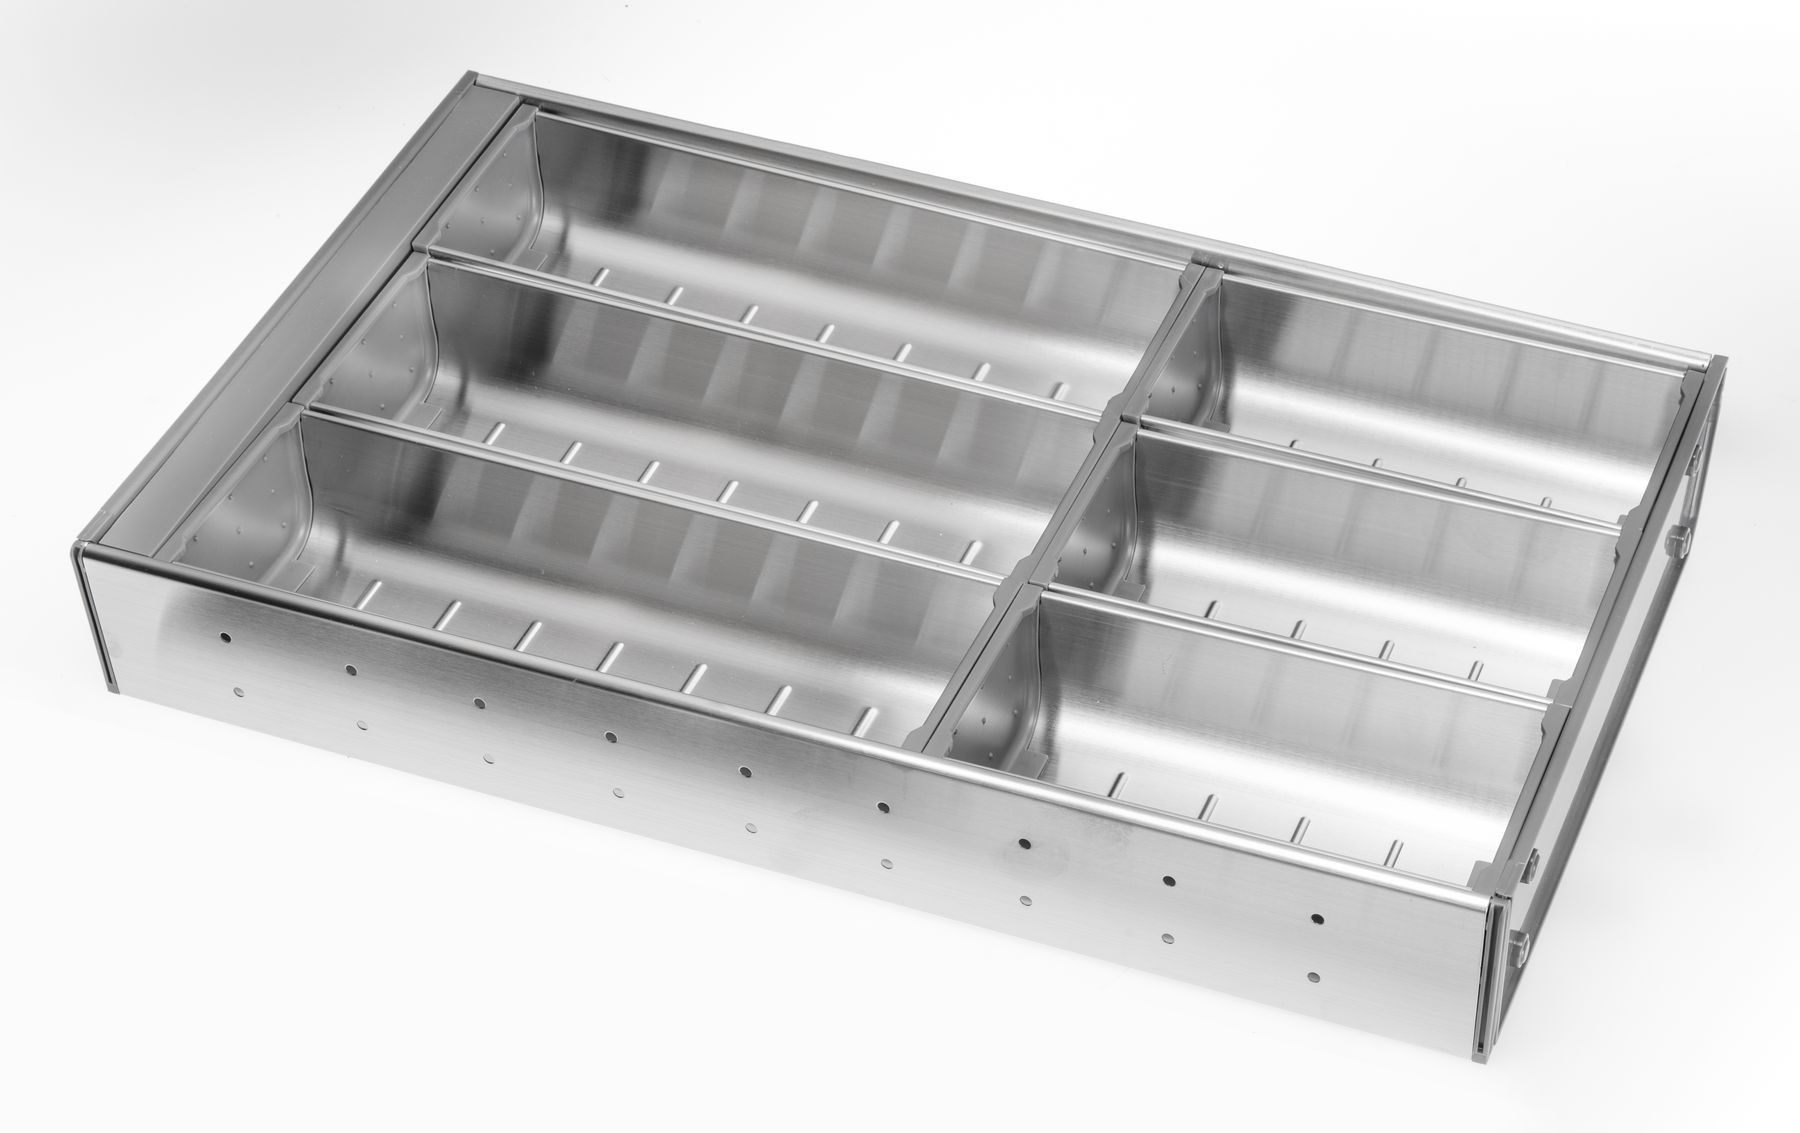 Stainless Steel Cutlery Insert for 400mm wide Drawer  for Kitchen